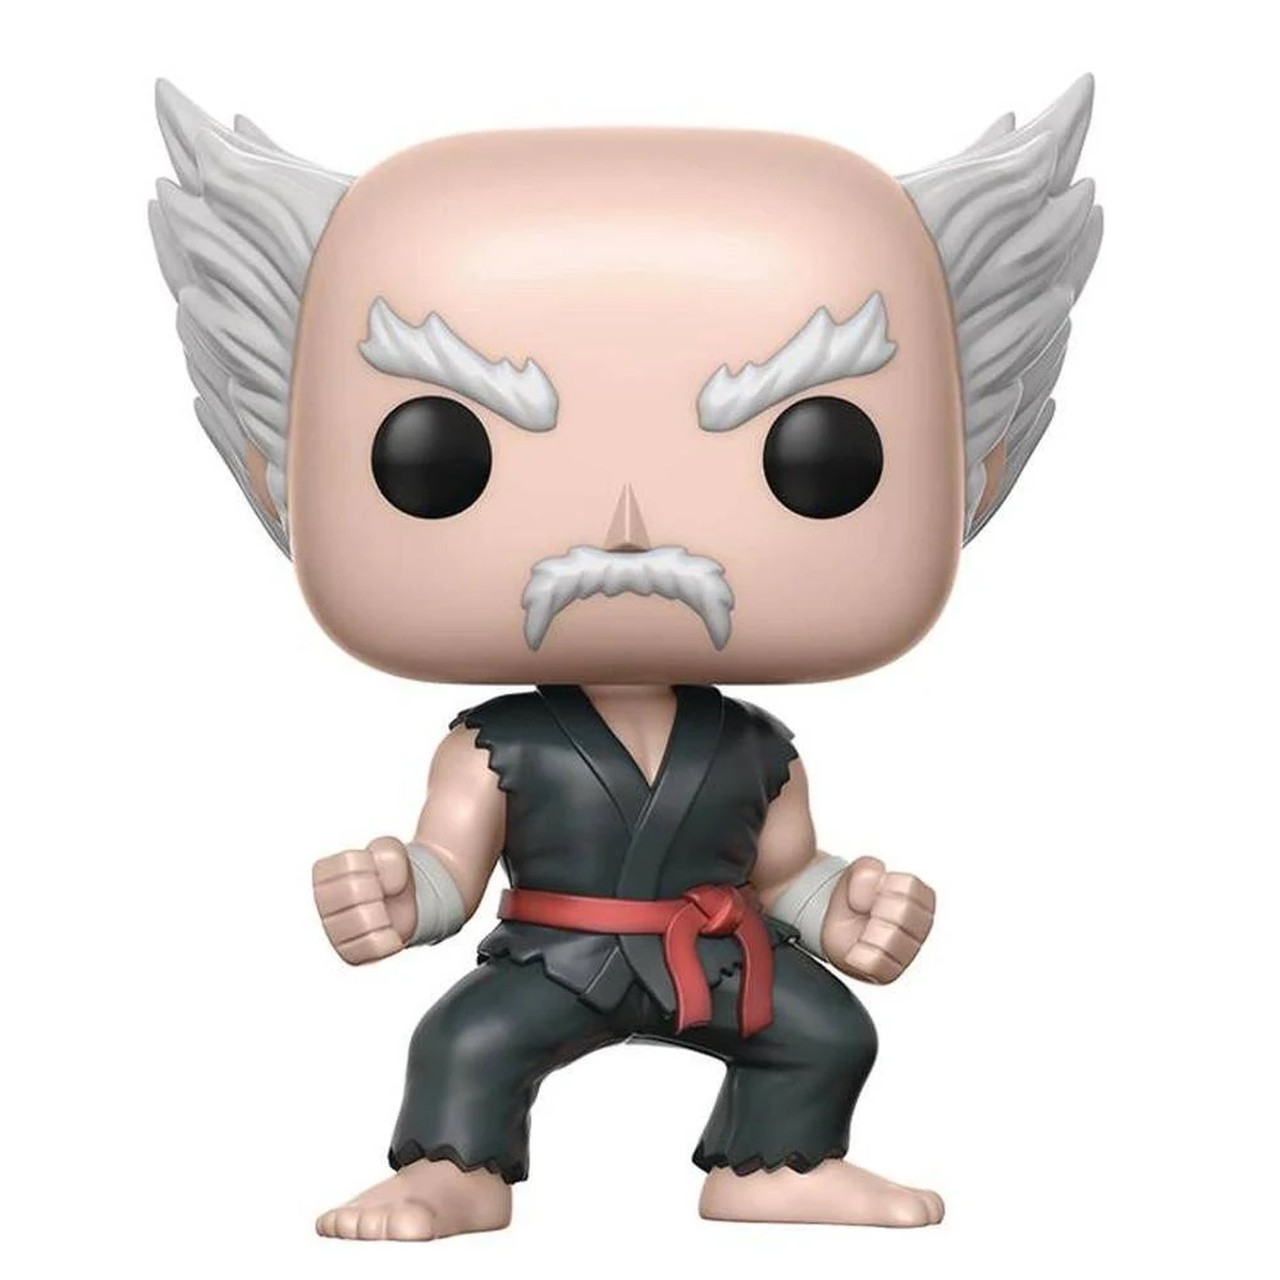 Boneco Funko Pop - Heihachi 171 - Tekken Game - Original